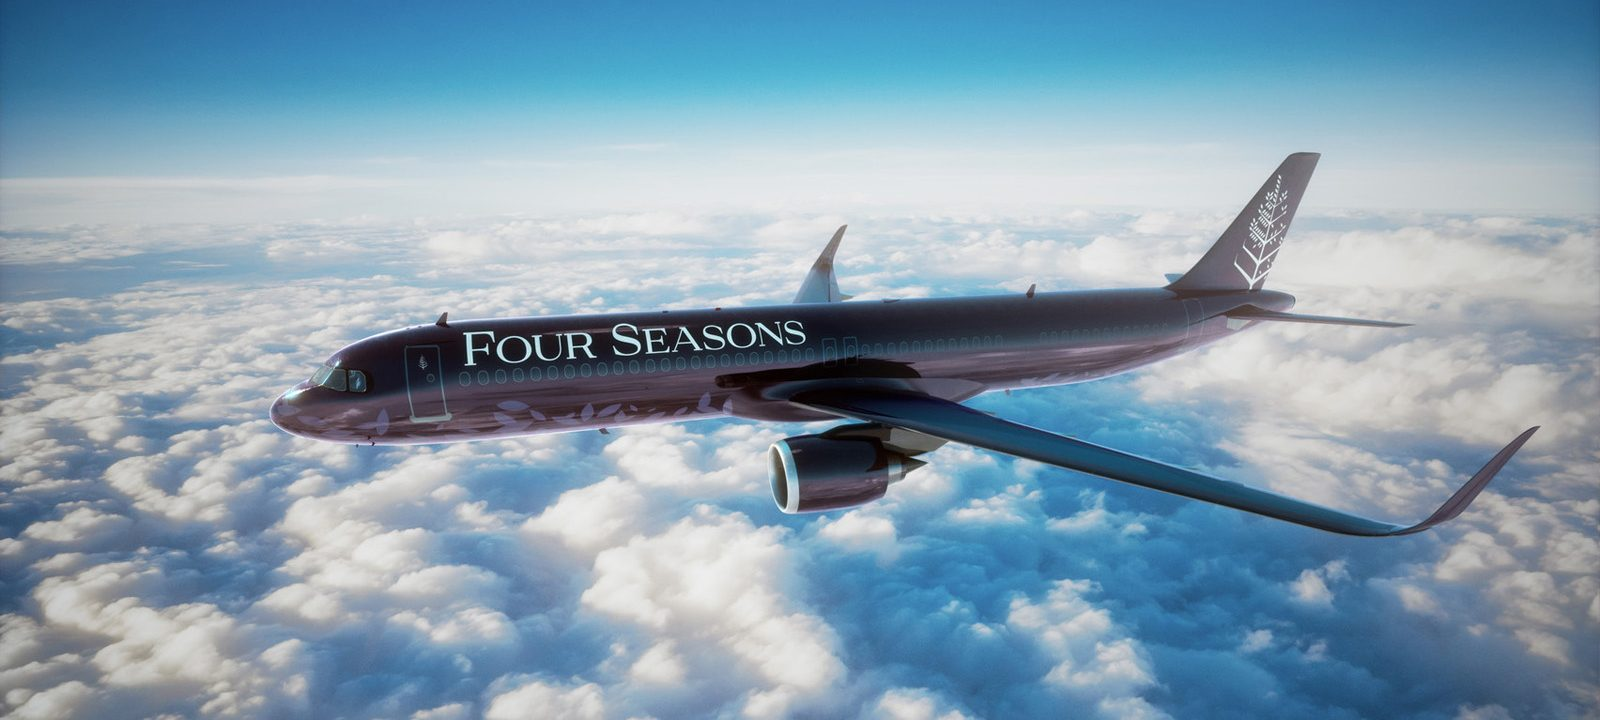 Four Seasons Private Jet takes flight with a brand-new plane